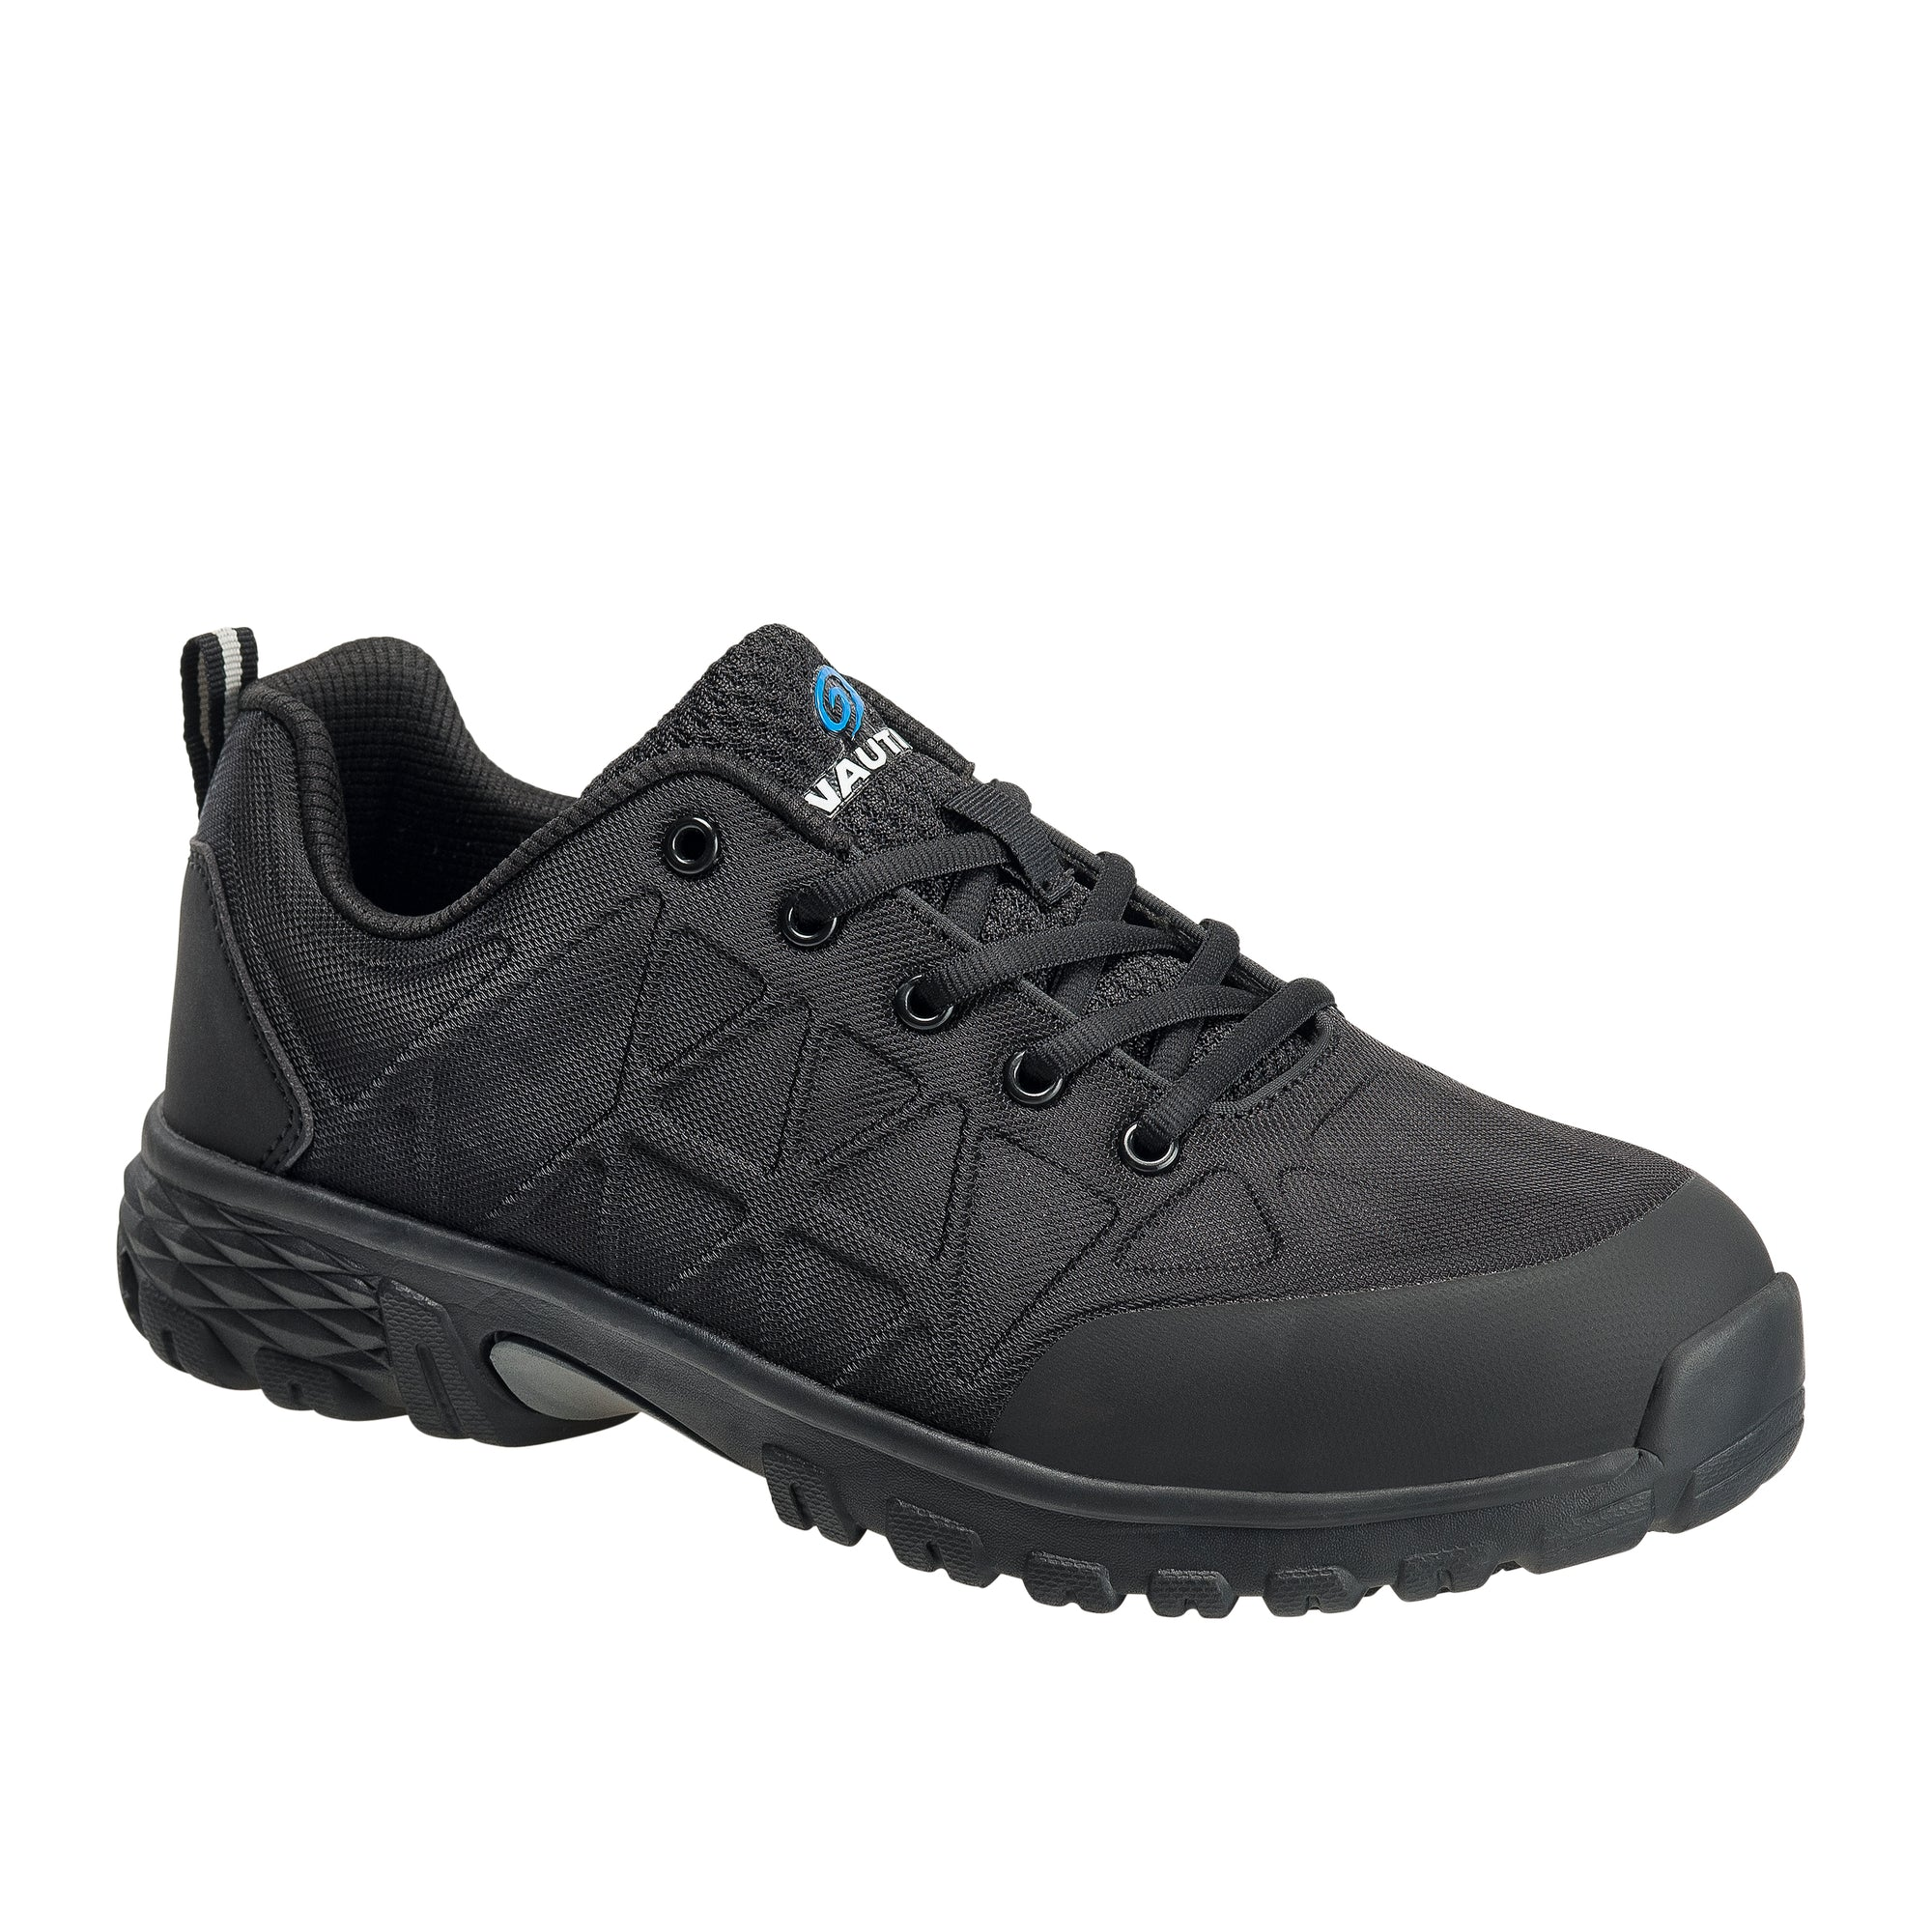 Spark Black Carbon Toe EH Athletic Work Shoe